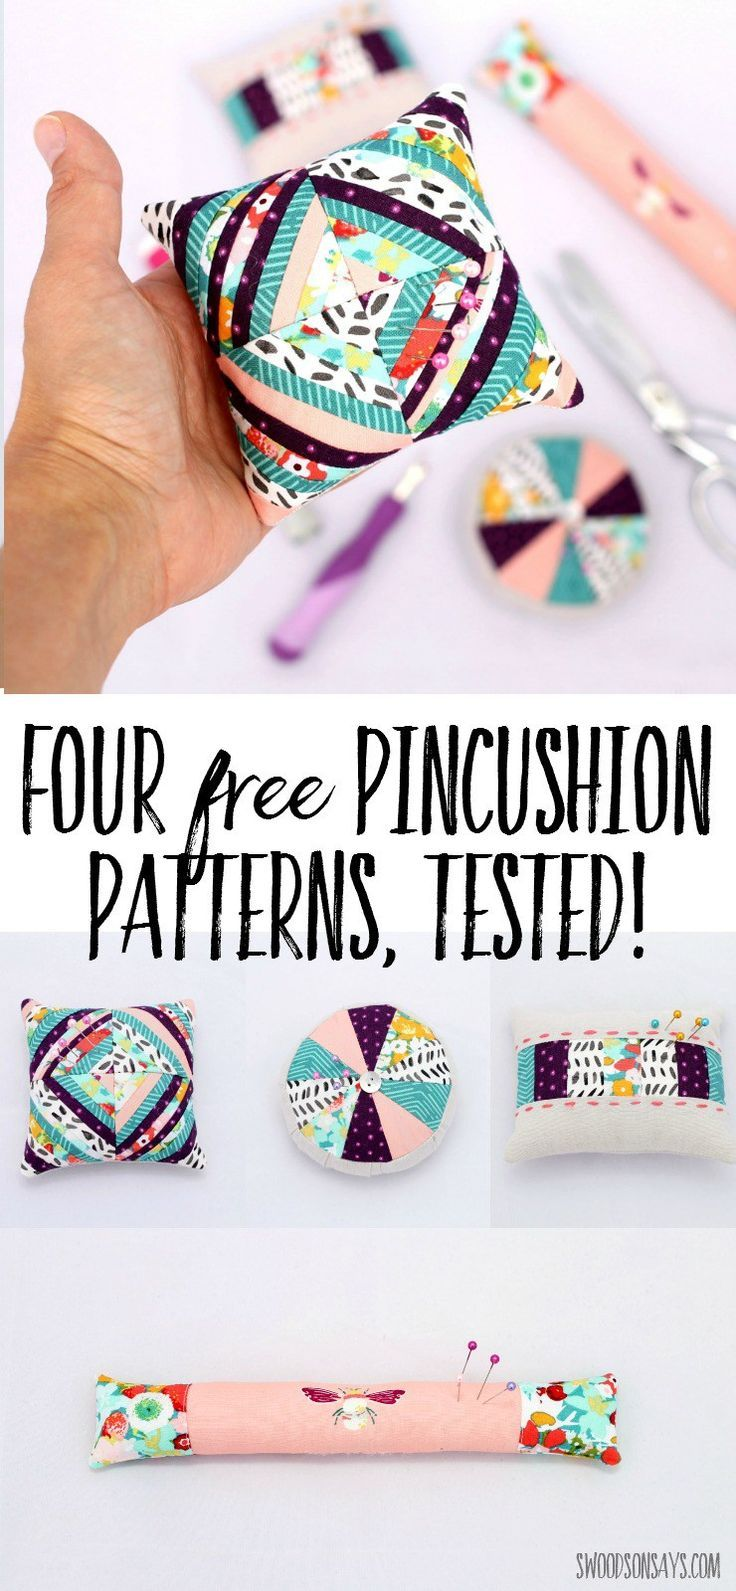 I tested four free pincushion patterns - come see what I thought of each one and get the links! Great scrap buster pincushion tutorials and handmade gift ideas. #pincushiontutorial #sewingtutorial #pincushion #scrapbuster